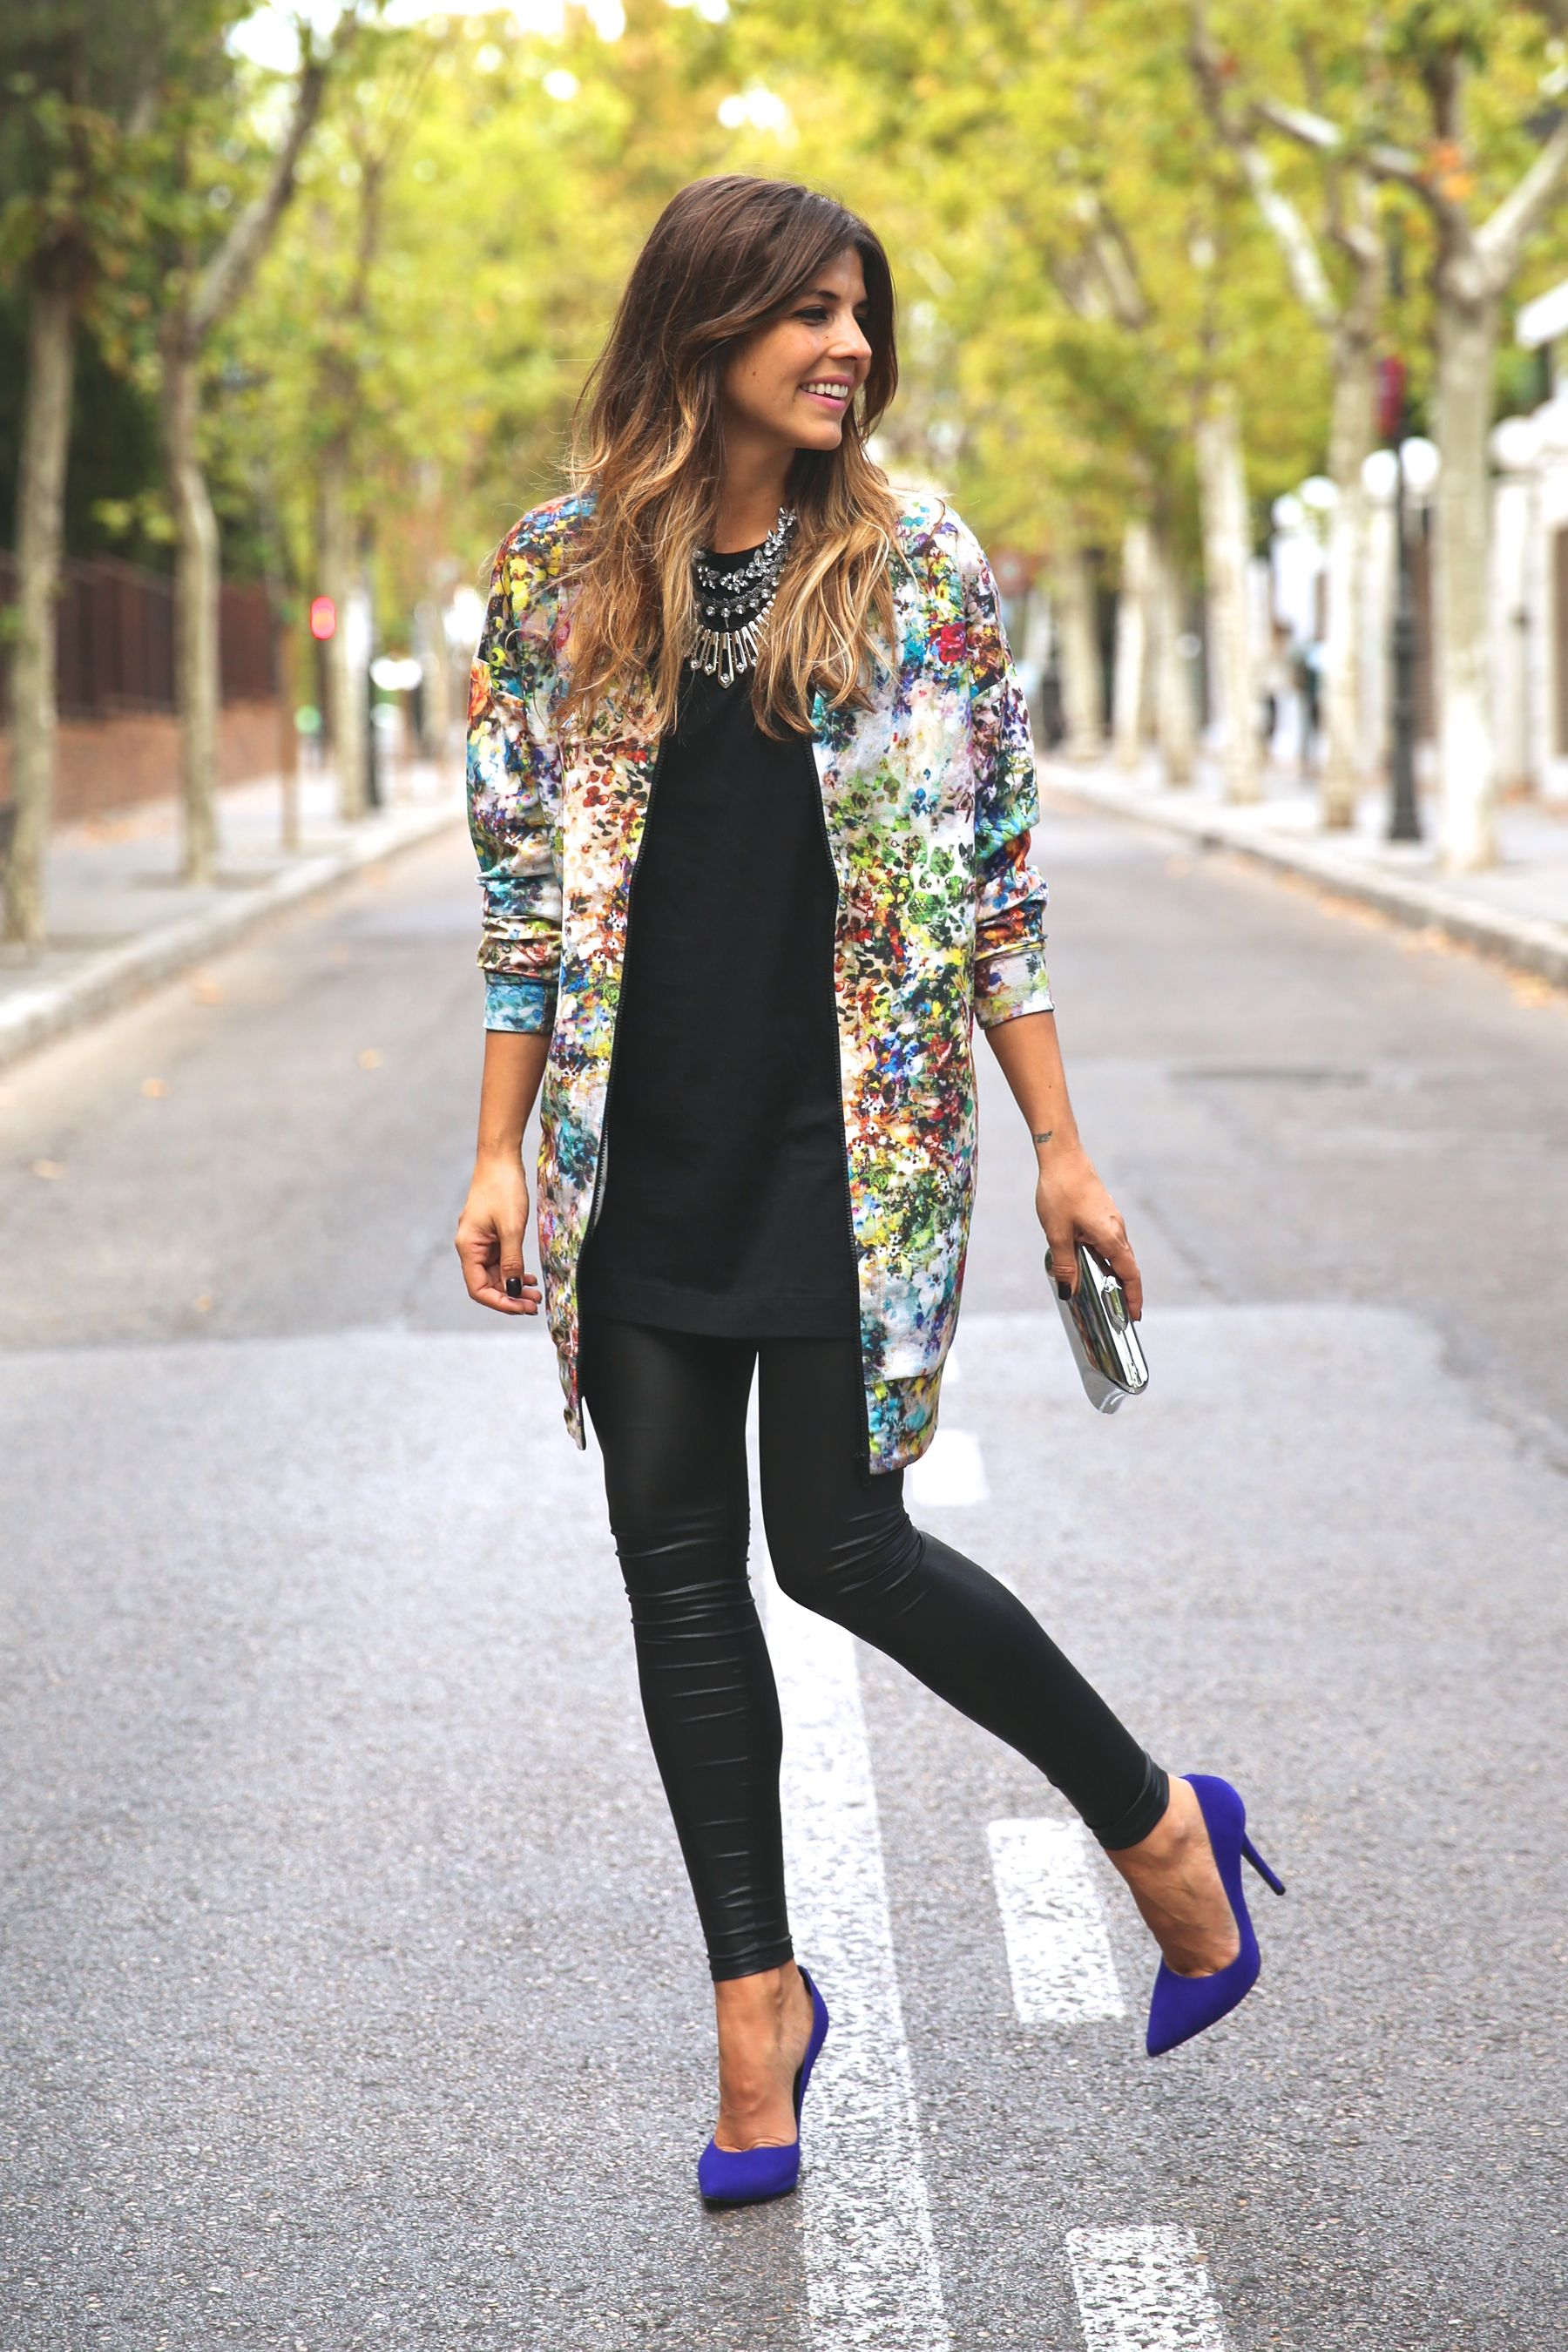 trendy_taste-look-outfit-street_style-ootd-blog-blogger-fashion_spain-moda_españa-leggings-bomber-cazadora-estampado_flores-flower_print-mas34-stiletto-estiletos-basic_tee-camiseta_basica-sport_chic-12